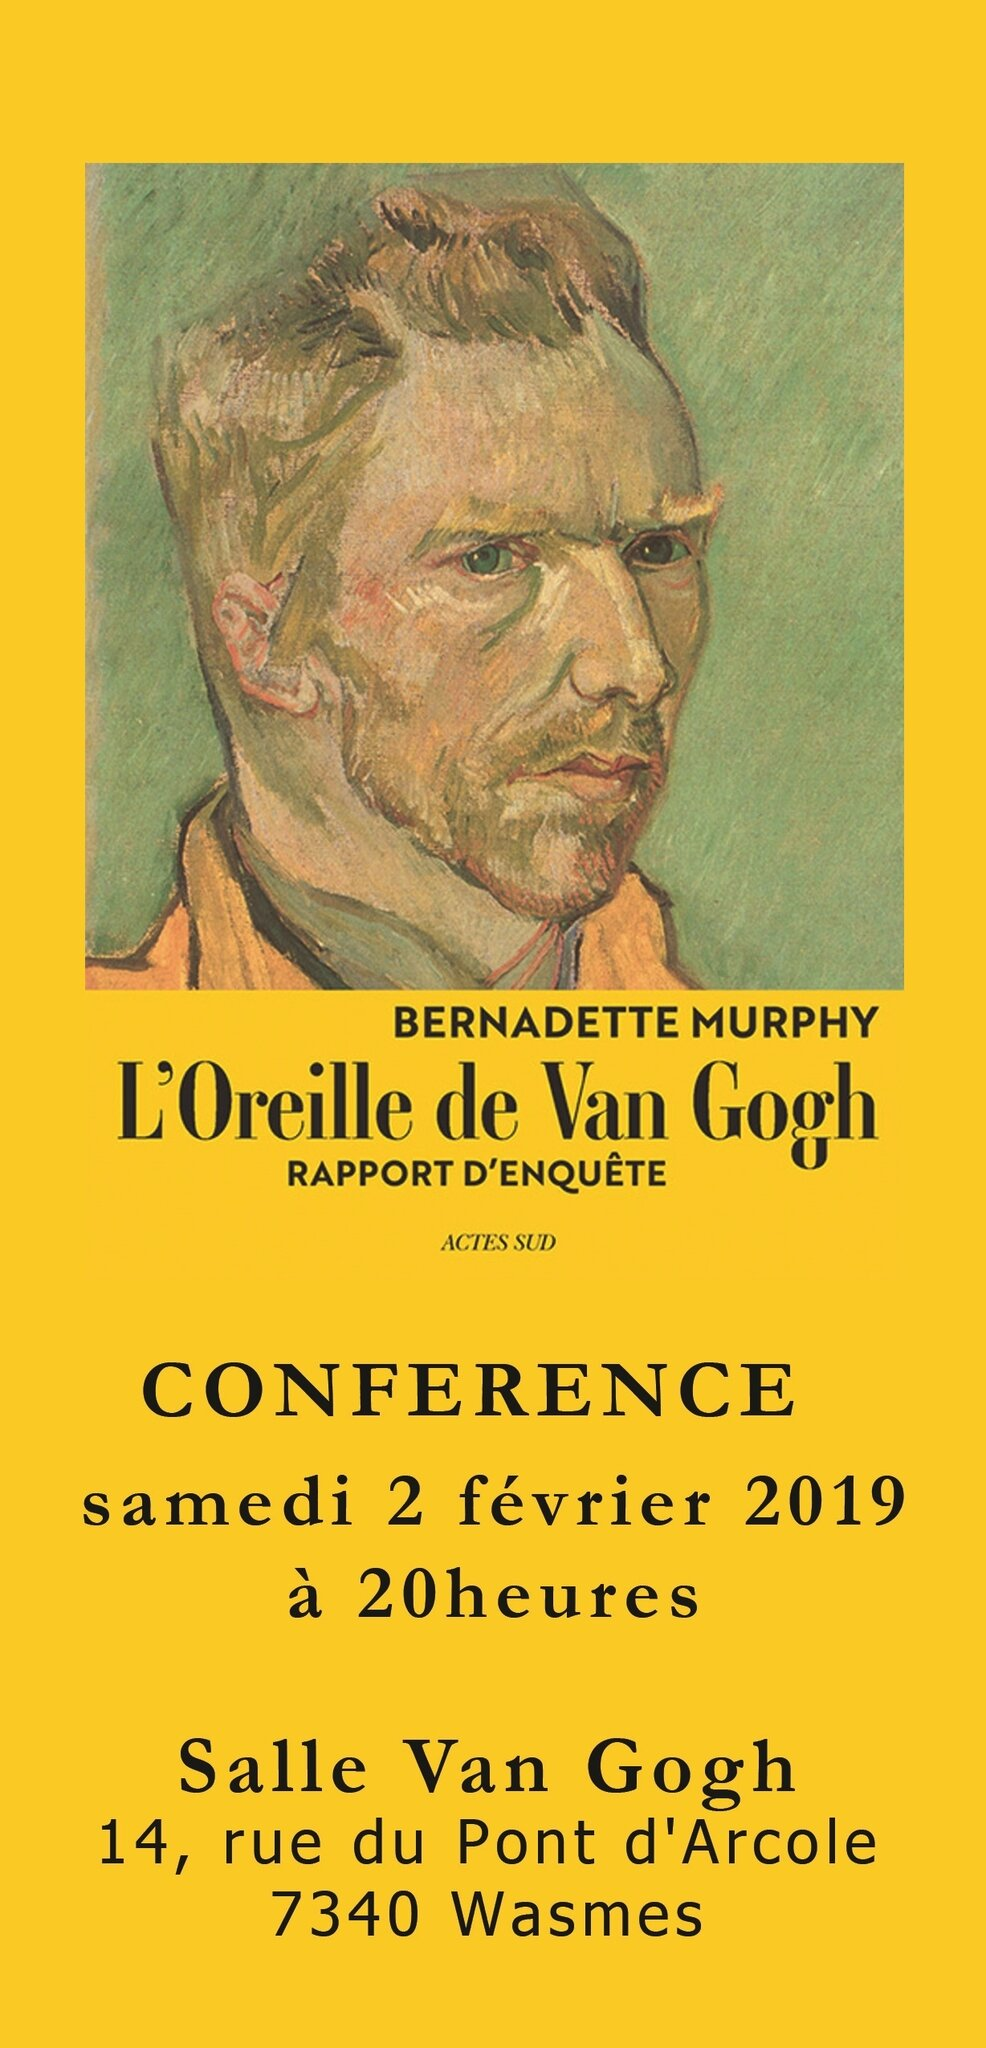 Pourquoi Van Gogh S Est Coupé L Oreille Bernadette Murphy The True Story Of Vann Gogh S Ear Van Gogh